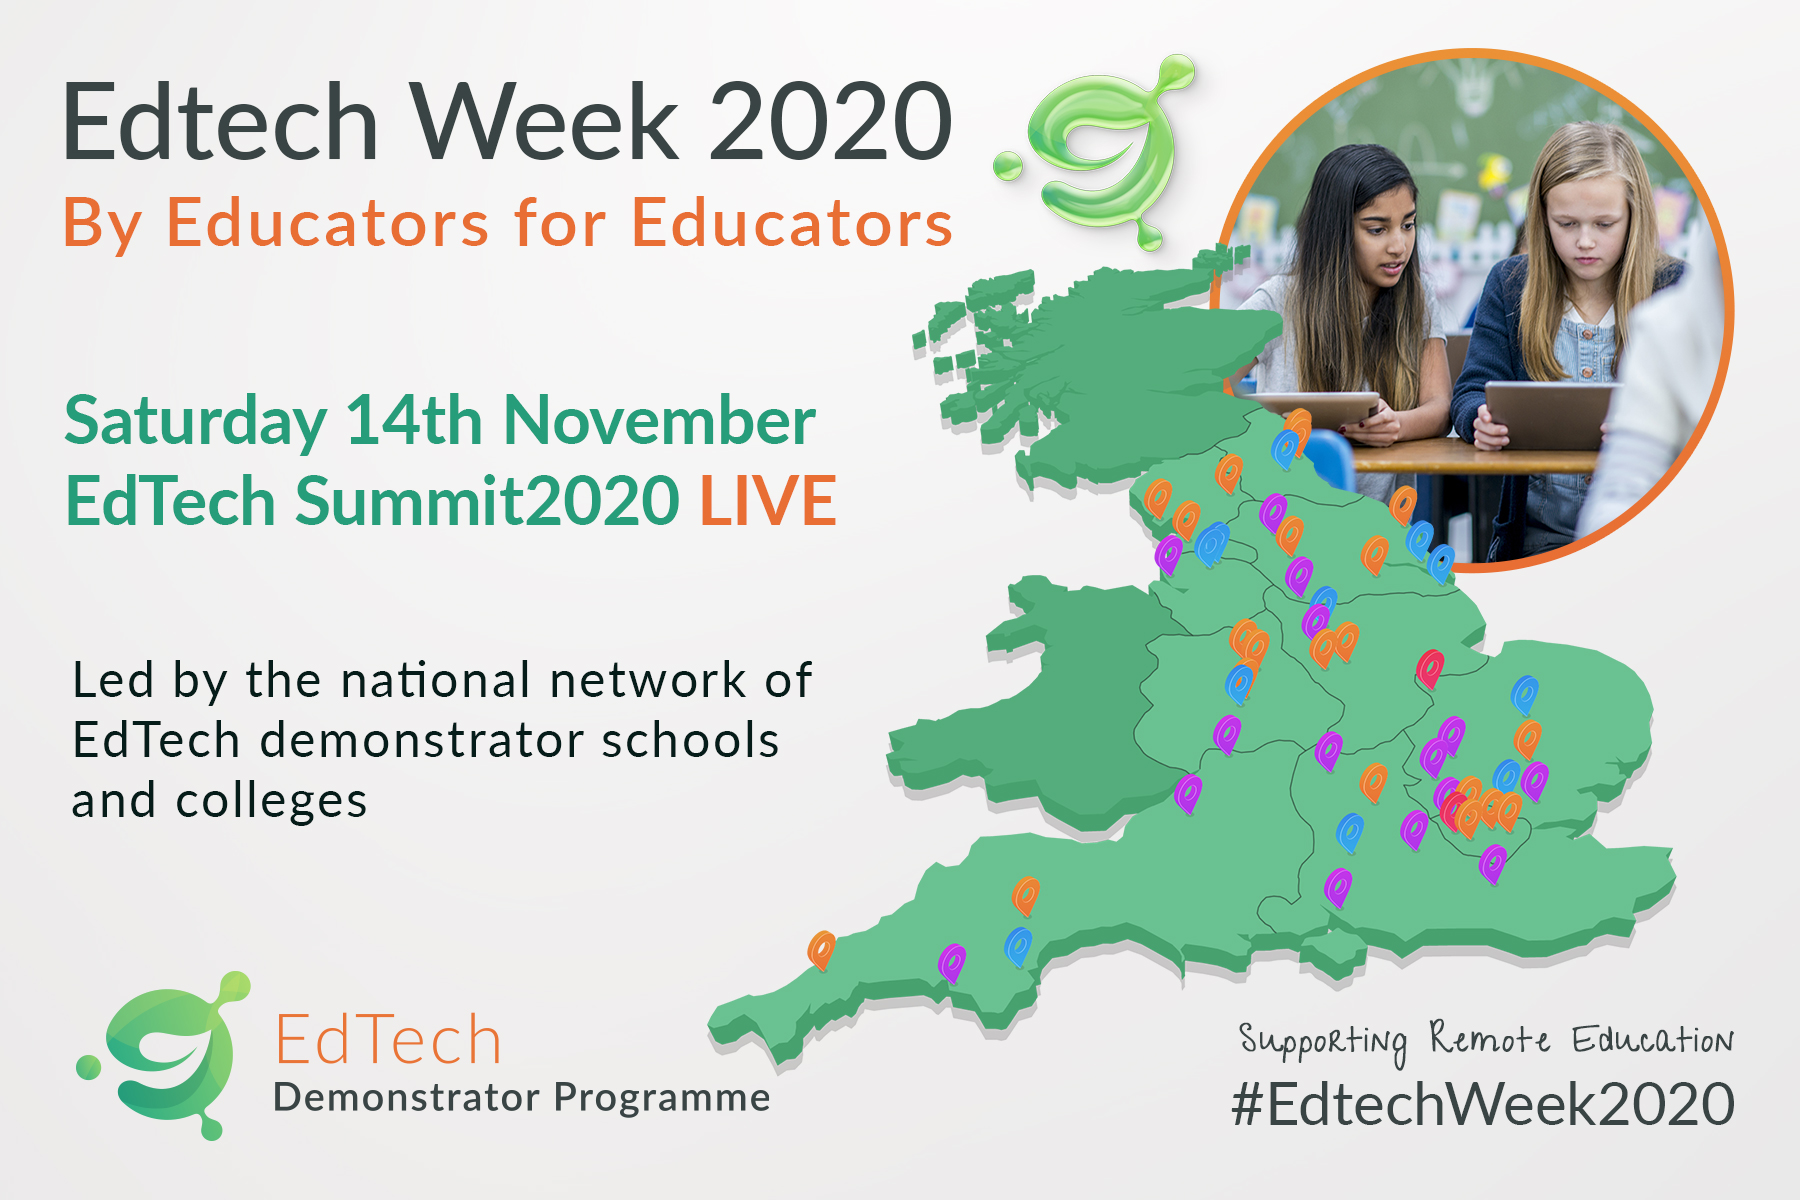 East Devon school at the heart of UK virtual education event